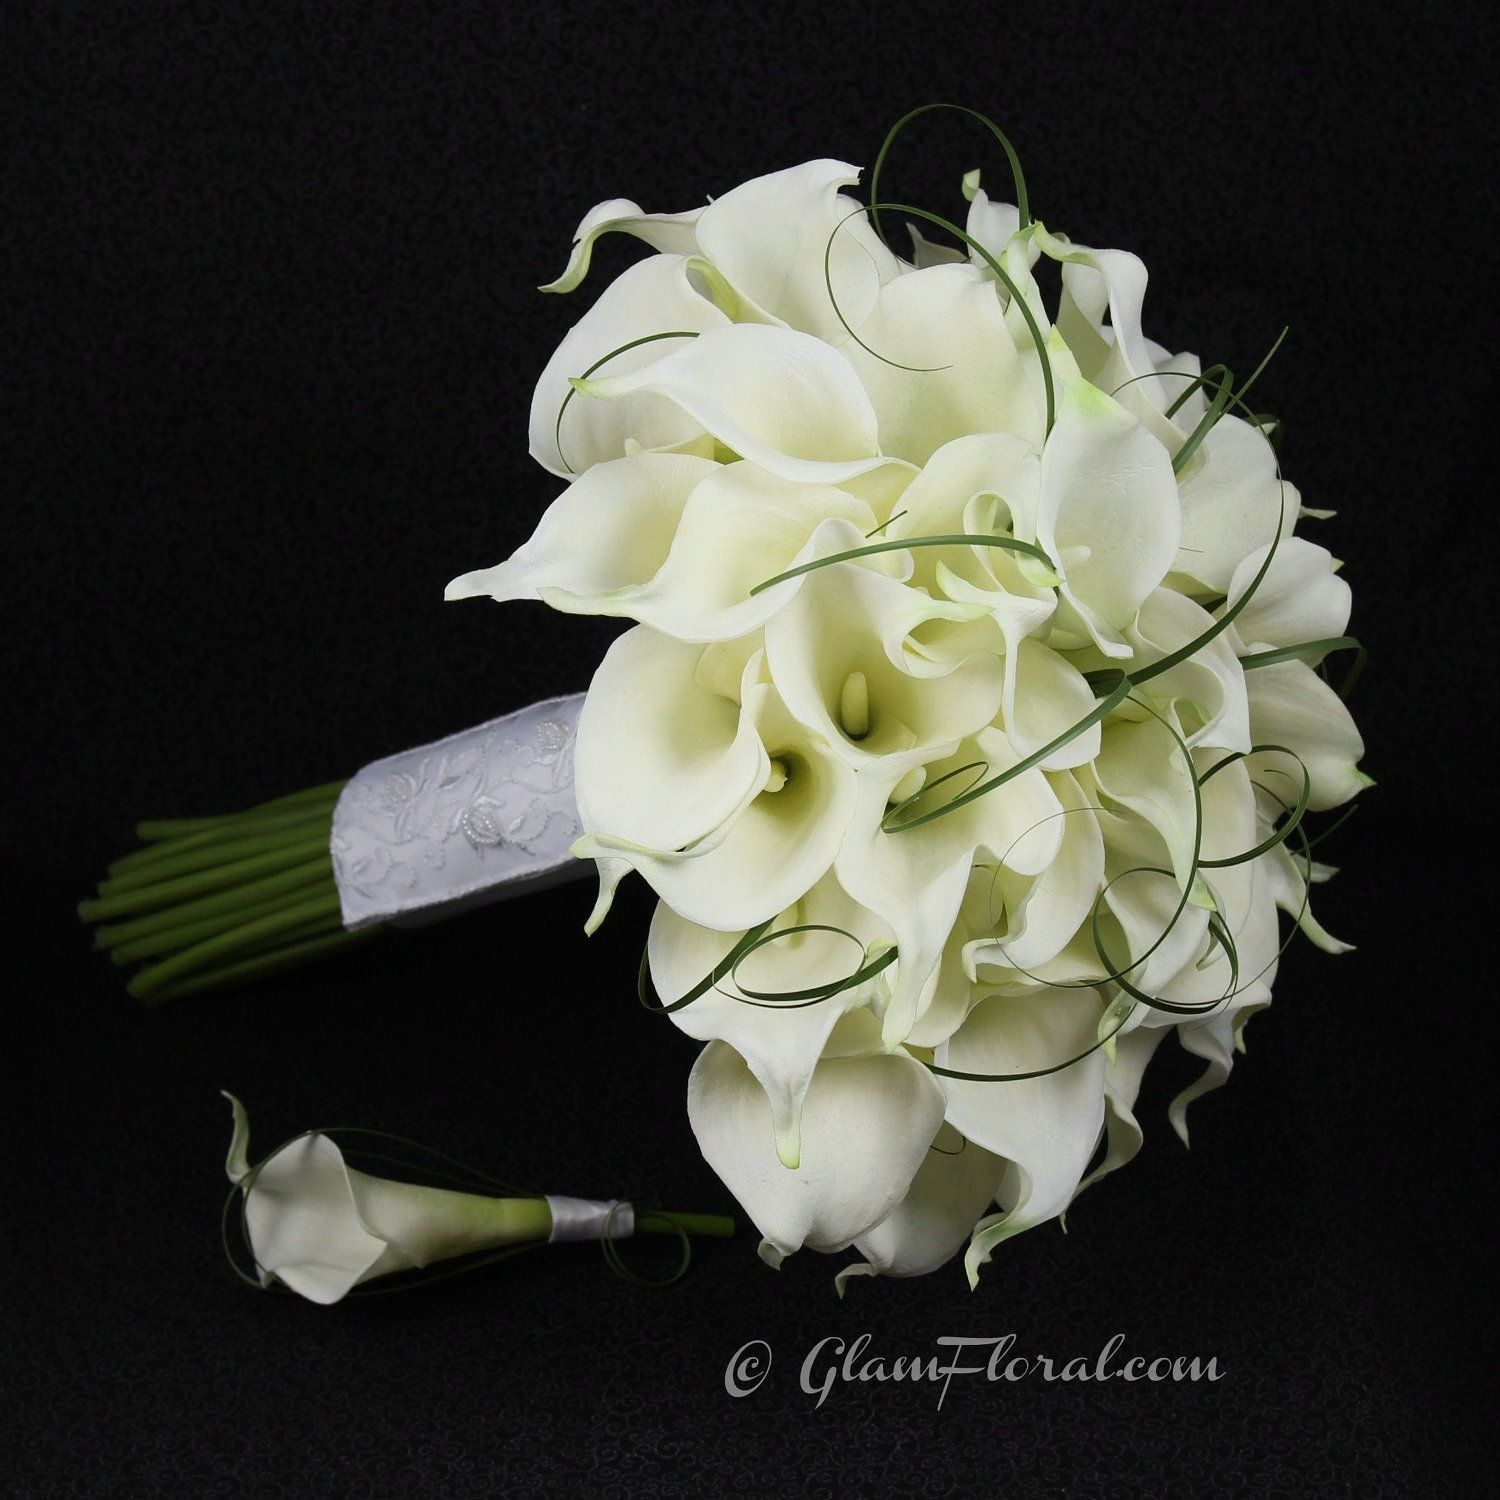 50 White Calla Lily Wedding Bouquet Boutonniere Set Real Touch Calla Lilies 50 Calla Brid Calla Lily Bouquet Wedding Calla Lily Wedding Mini Calla Lilies